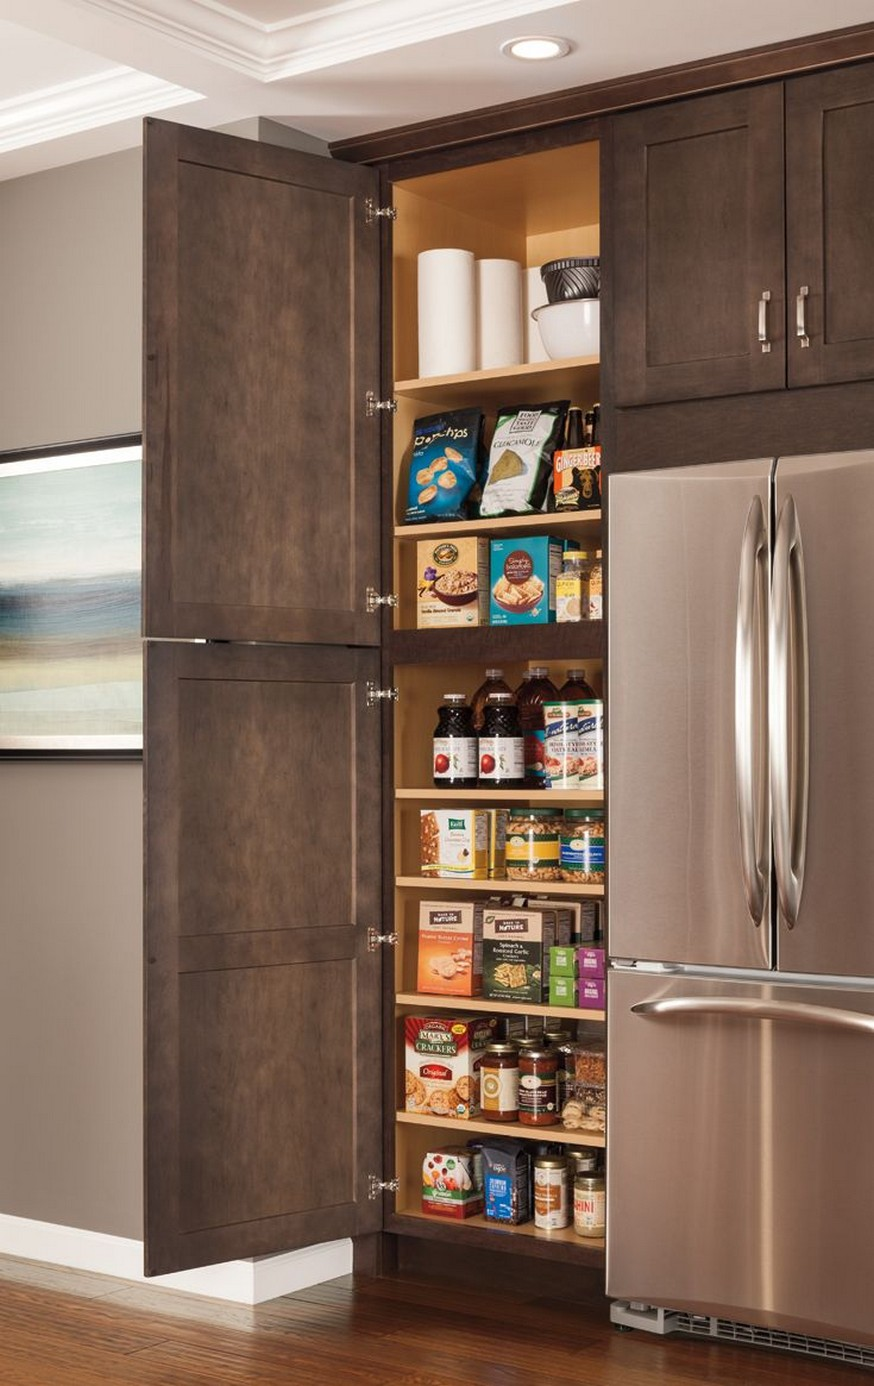 71 Painted Kitchen Cabinets Ideas For Home Decor 1